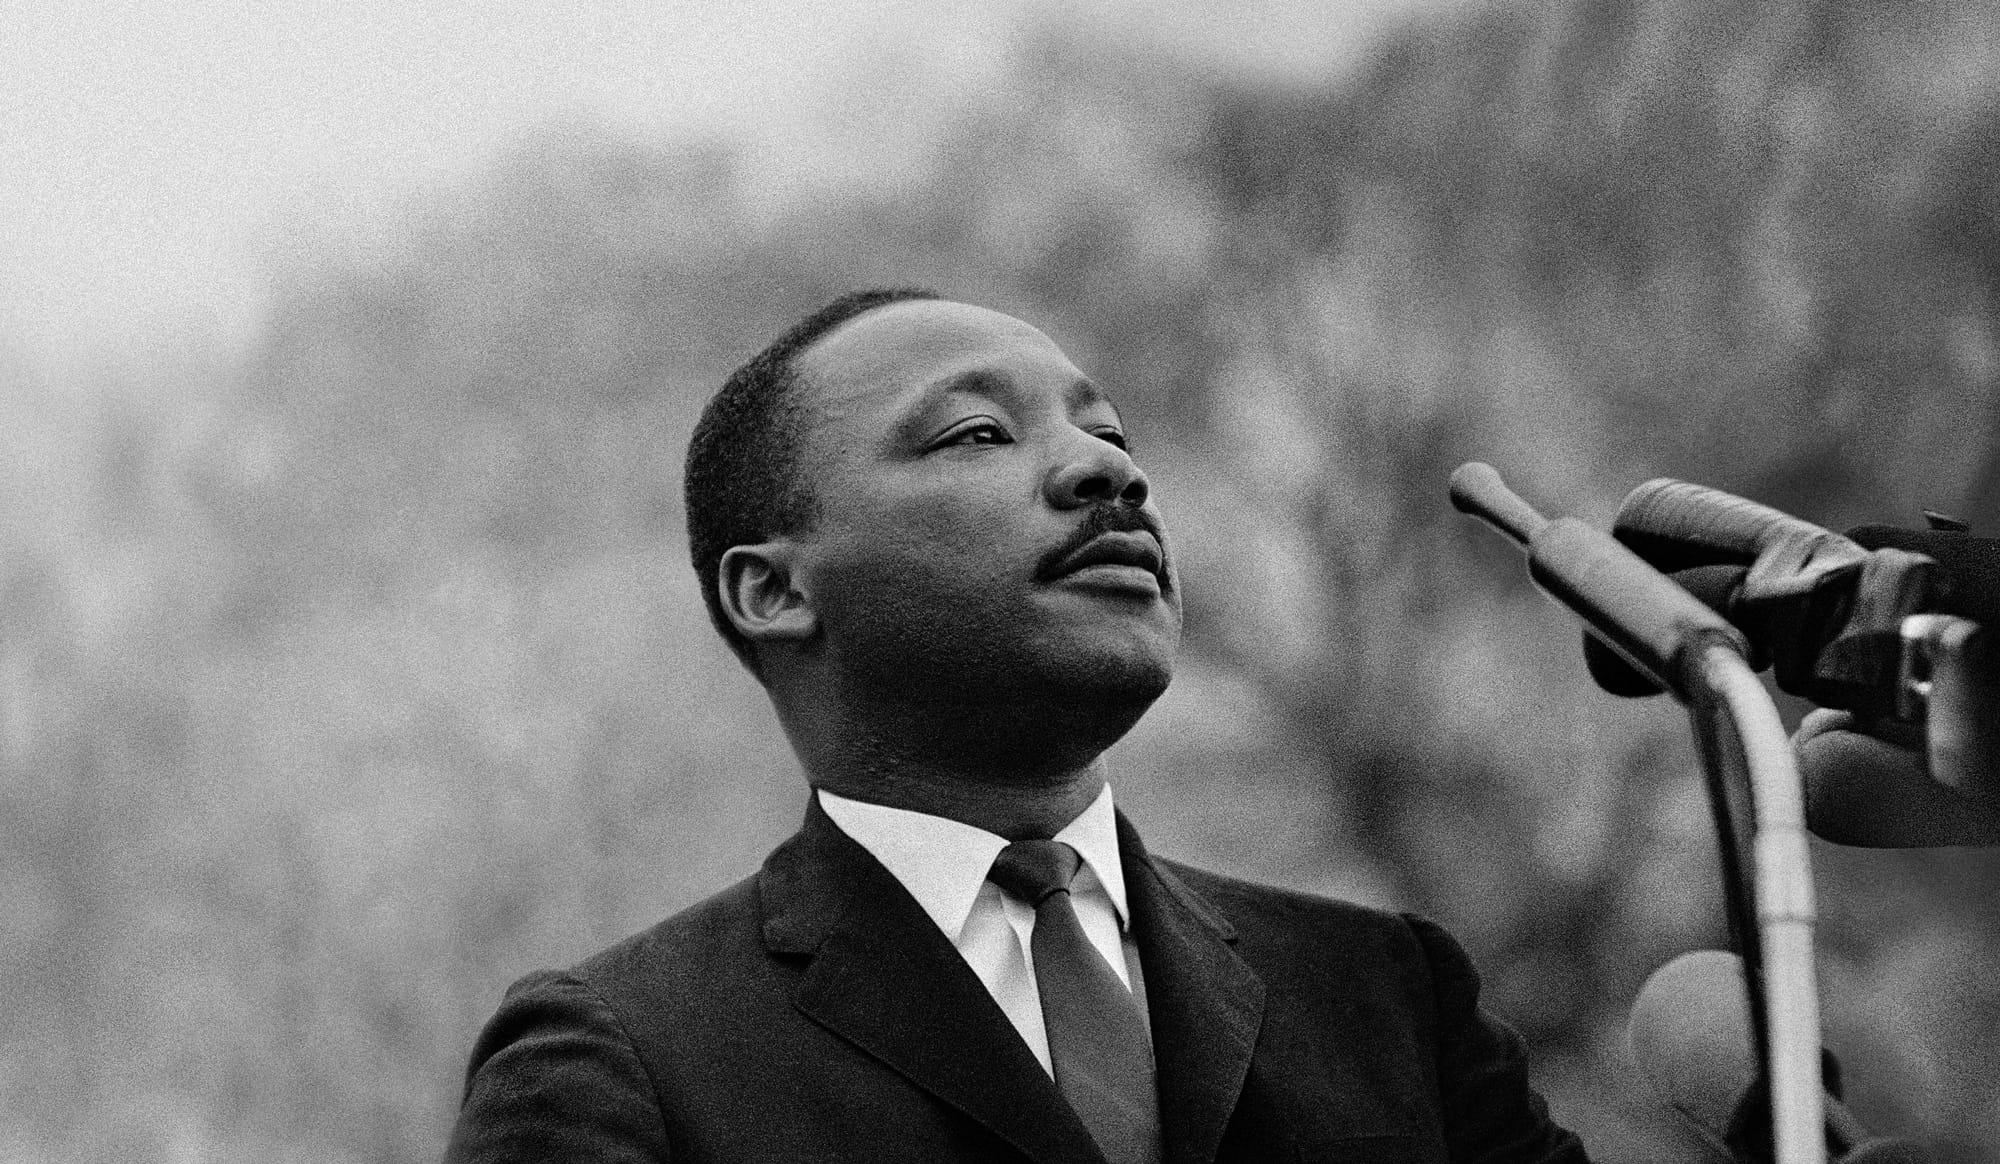 the life history of martin luther king jr April 4, 2018 marks the 50th anniversary of the assassination of martin luther king, jr pulitzer prize author and historian taylor branch spoke about the life and legacy of the civil rights.